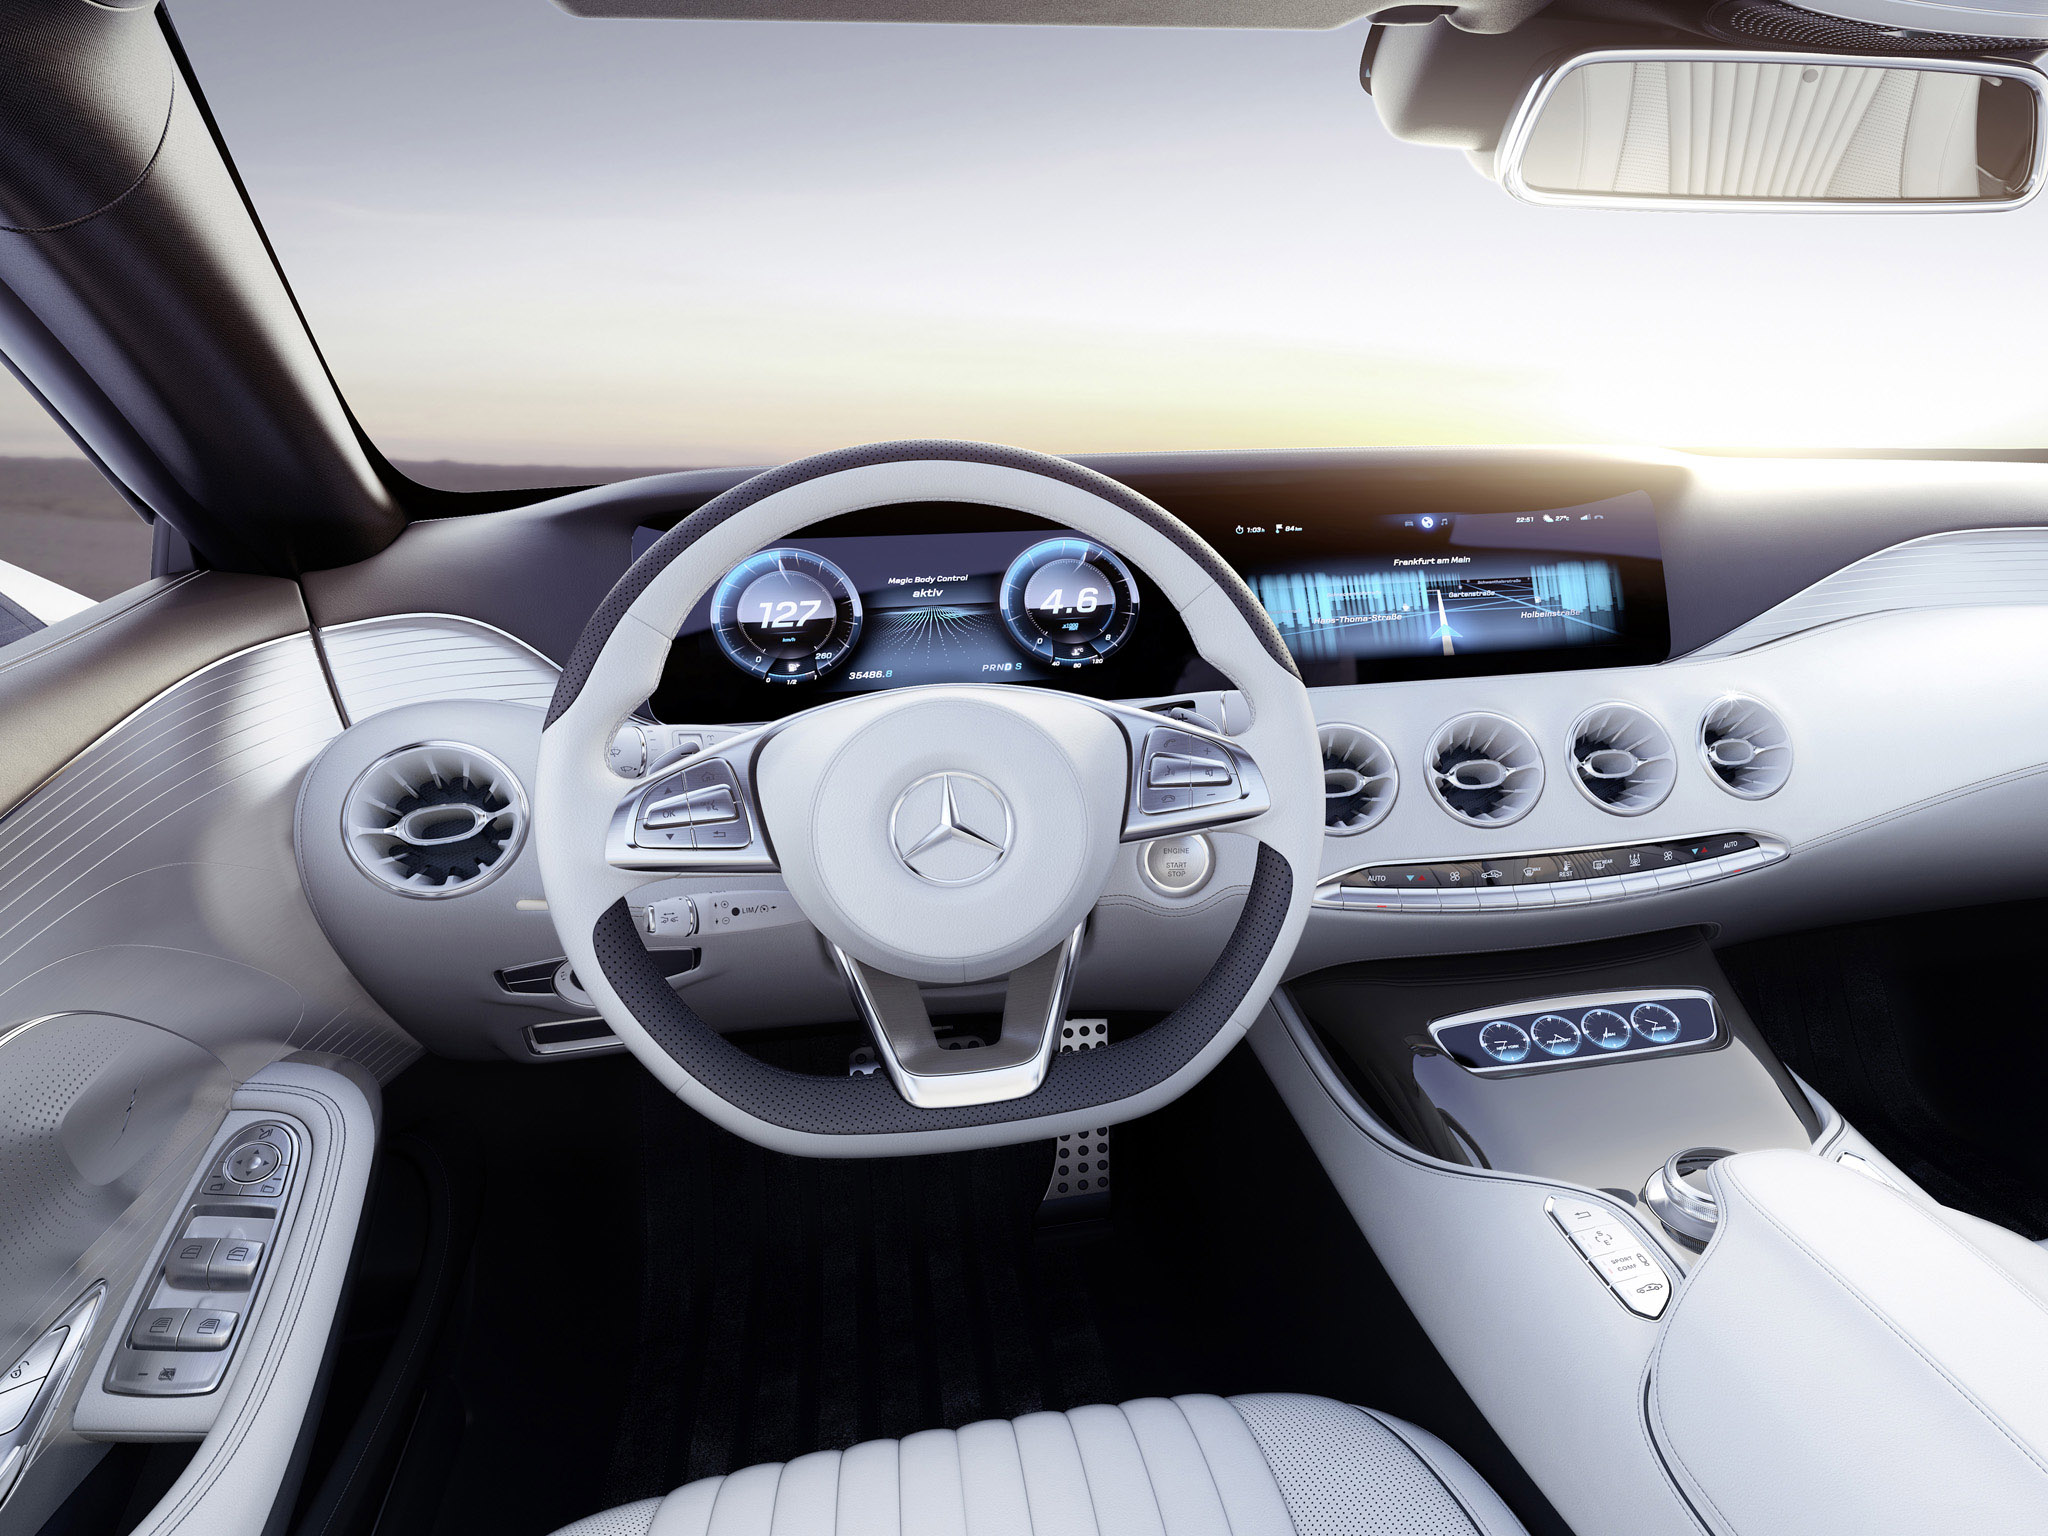 2013 Mercedes Benz S Class Coupe Concept Interior T